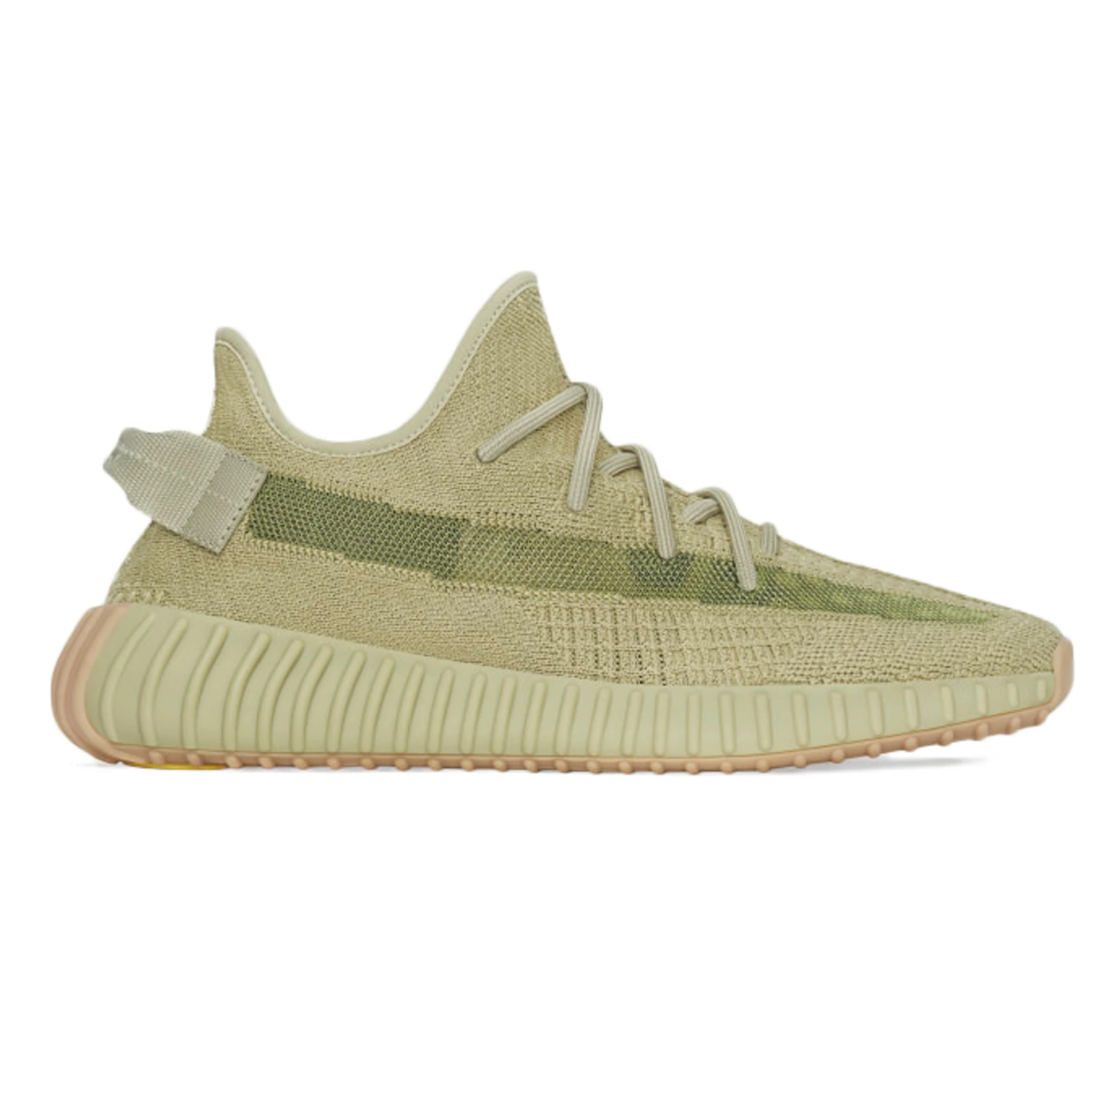 ADIDAS YEEZY BOOST 350 V2 SULFUR SHOES